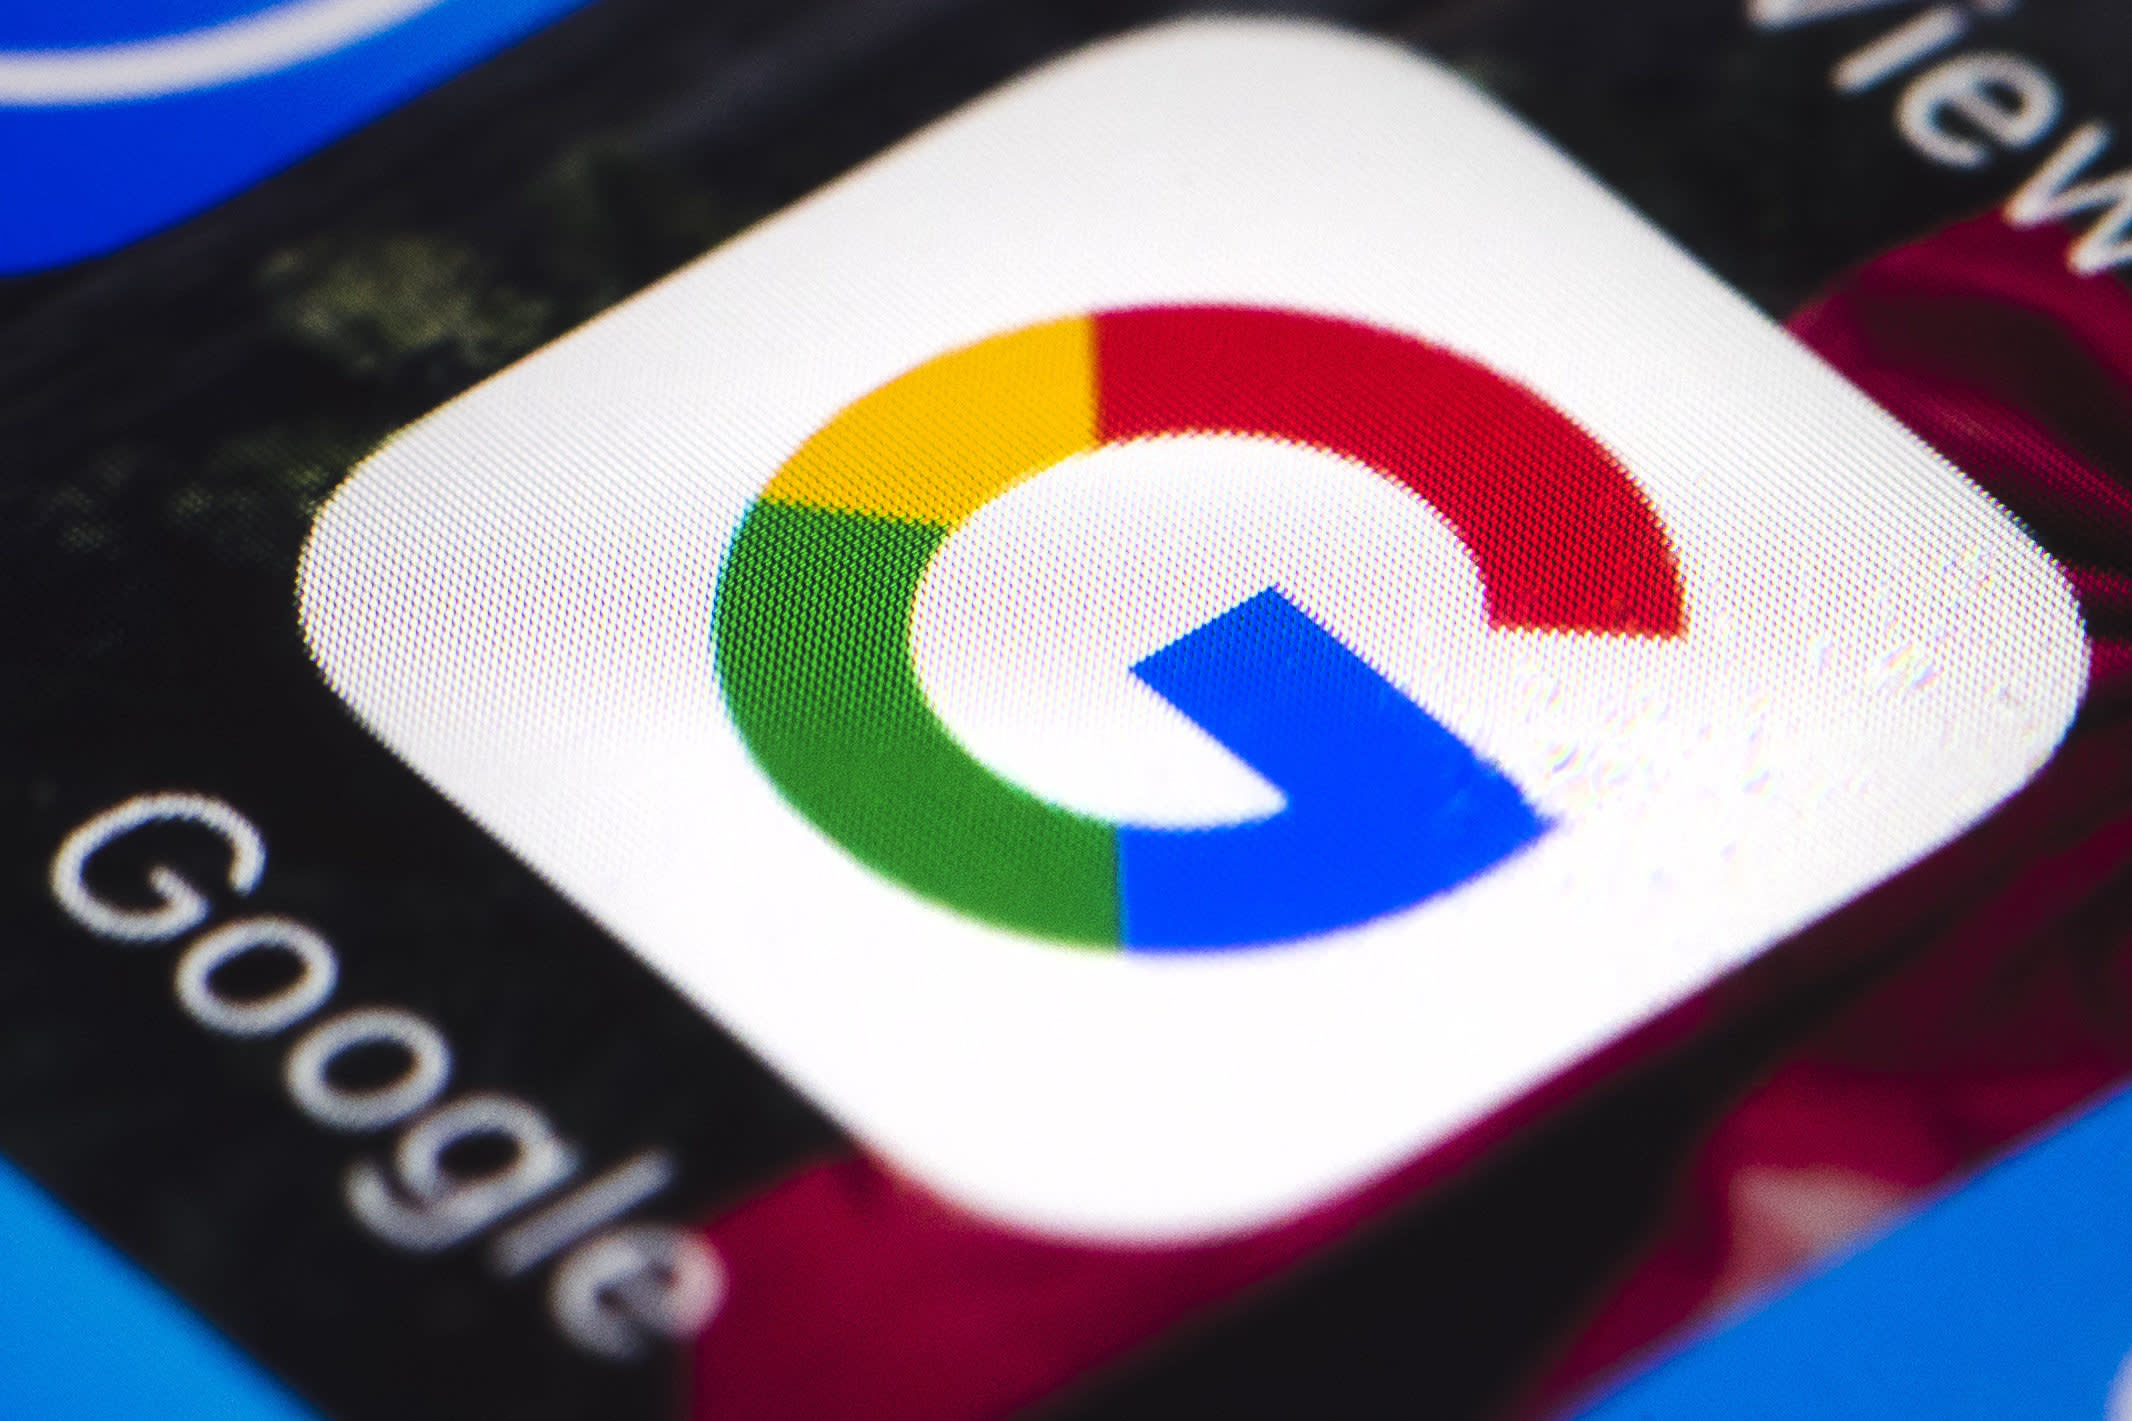 Online safety bill could not stop scam ads, says Google